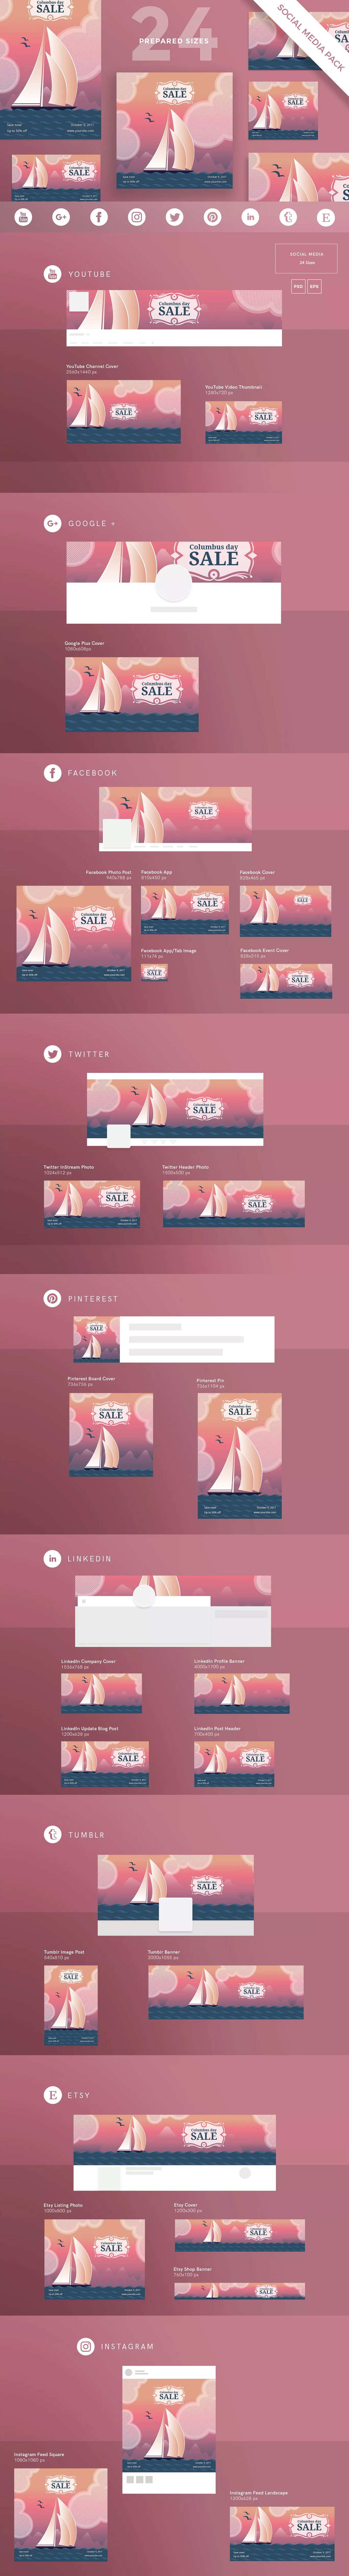 Columbus Day Sale Social Media Pack Template EPS PSD 24 sizes of